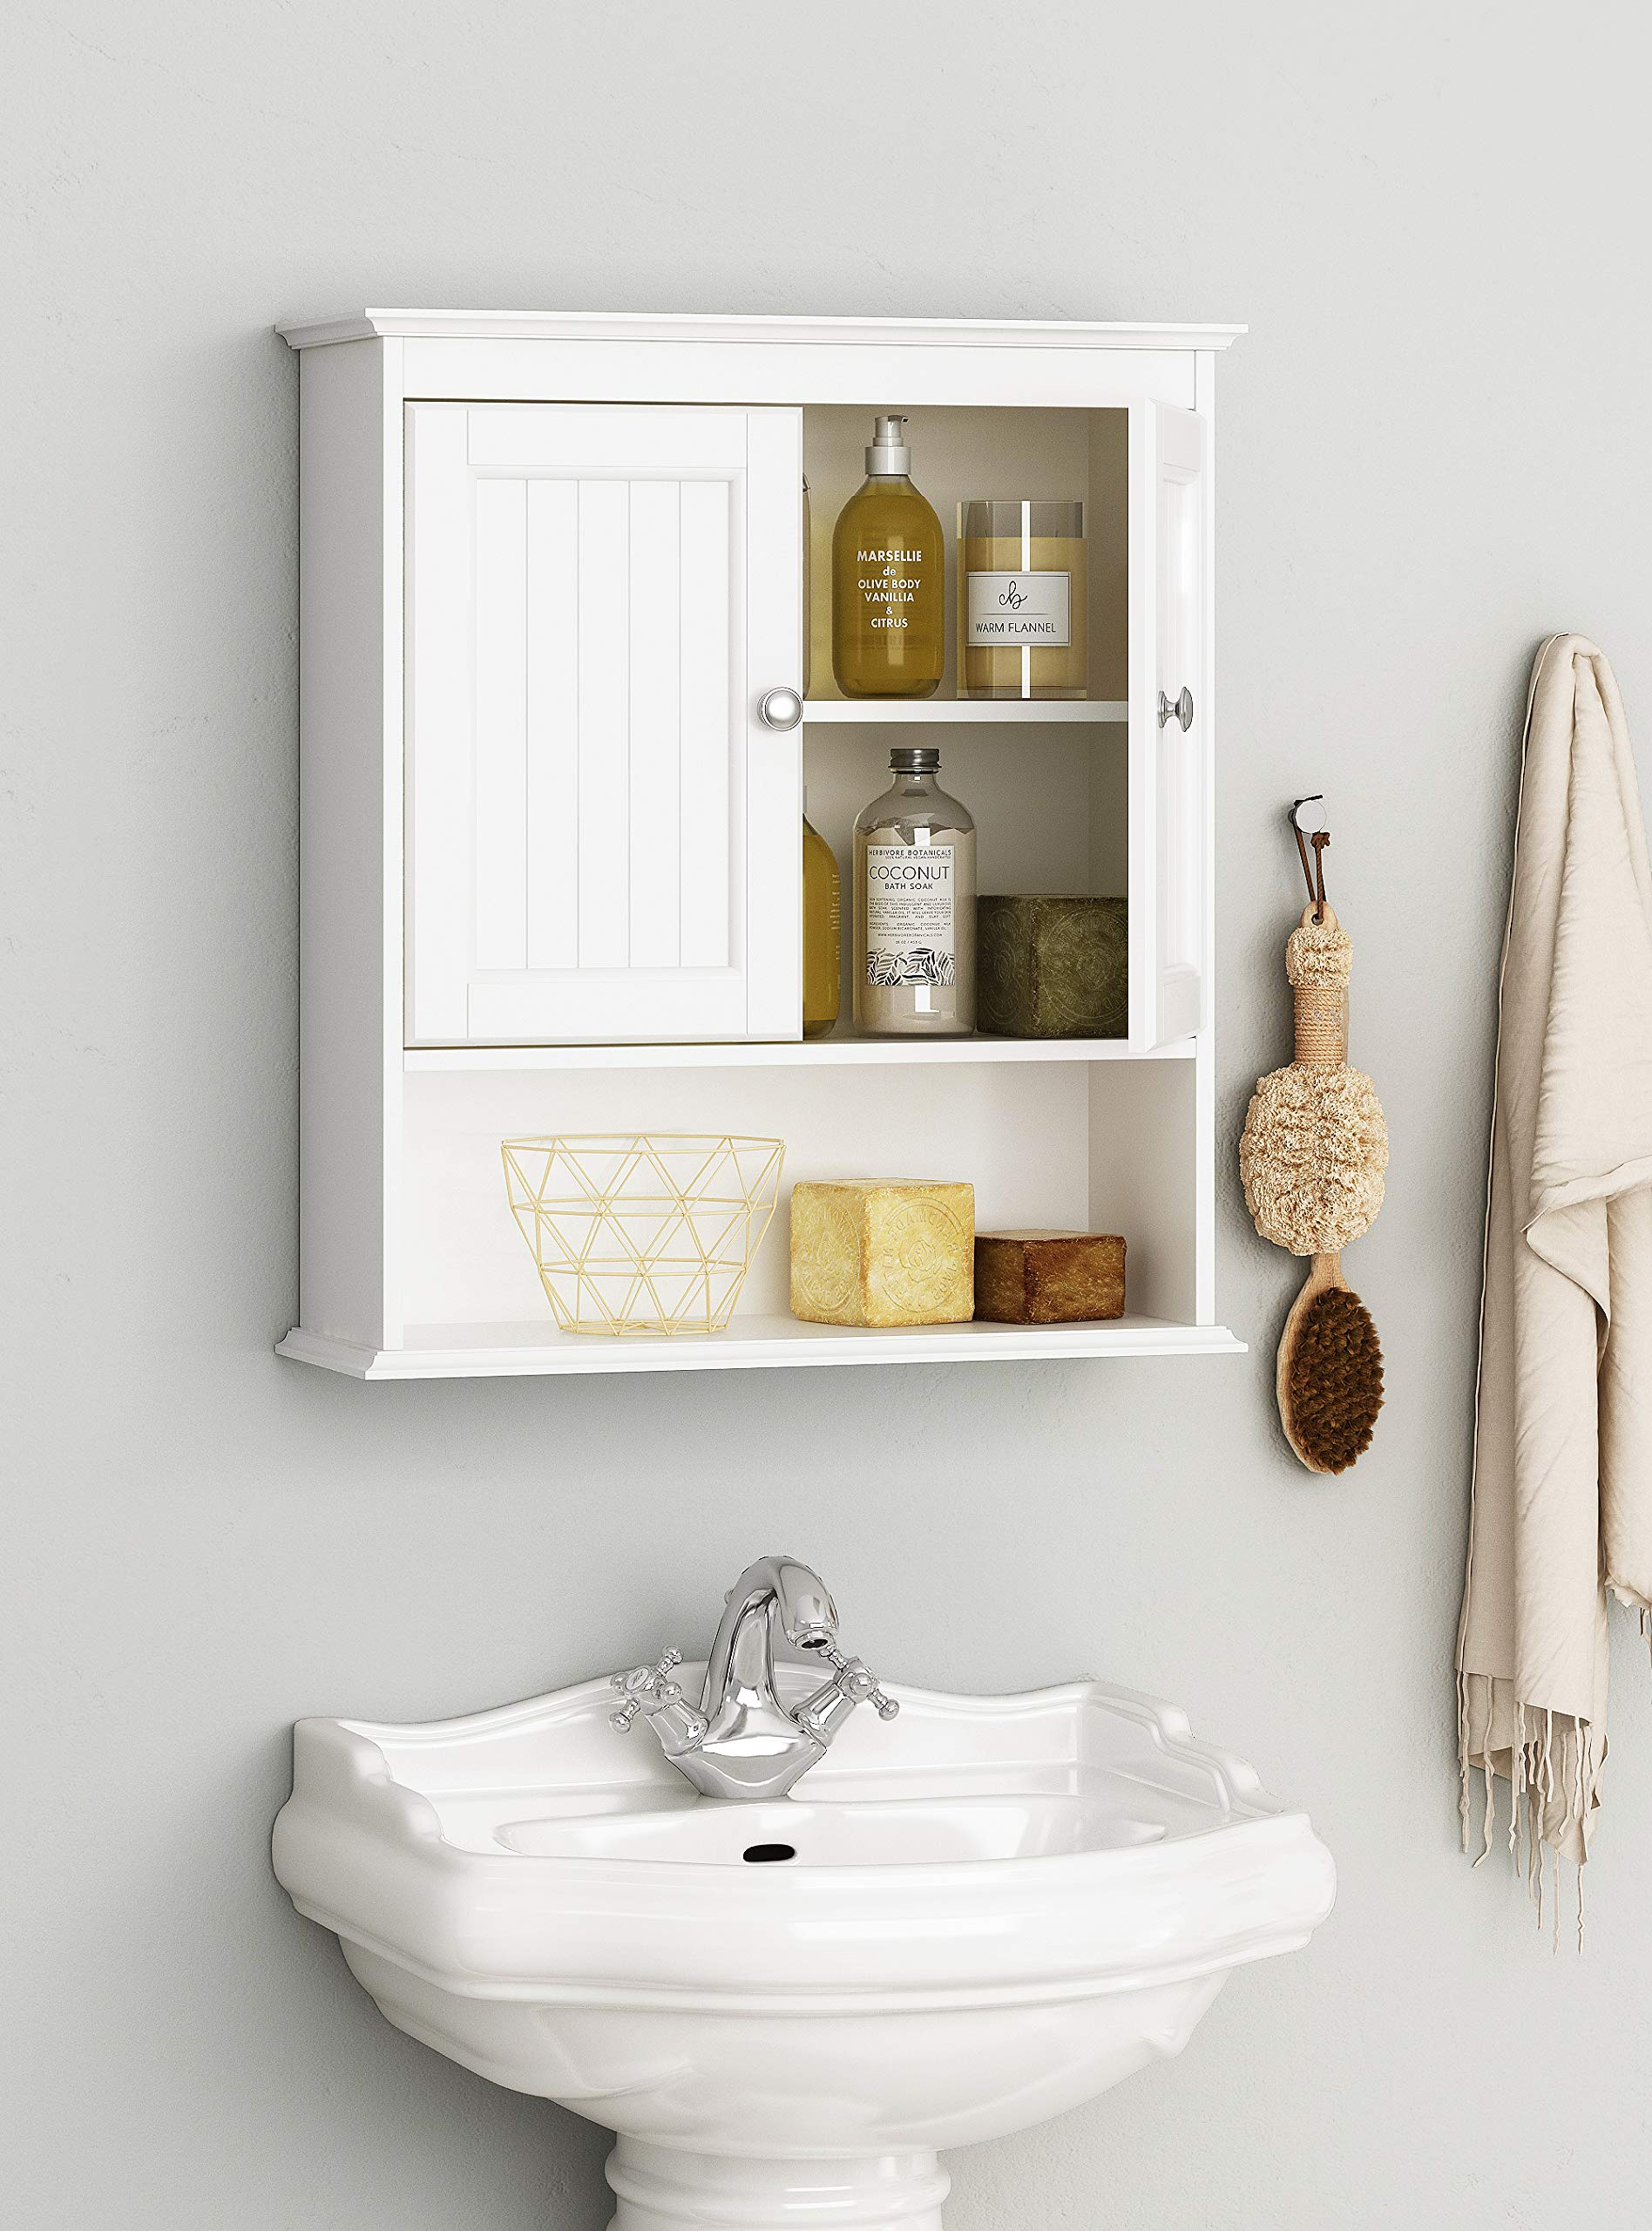 Spirich Home Bathroom Cabinet Wall Mounted with Doors, Wood Hanging Cabinet, Wall Cabinets with Doors and Shelves Over The Toilet, Bathroom Wall Cabinet White by Spirich